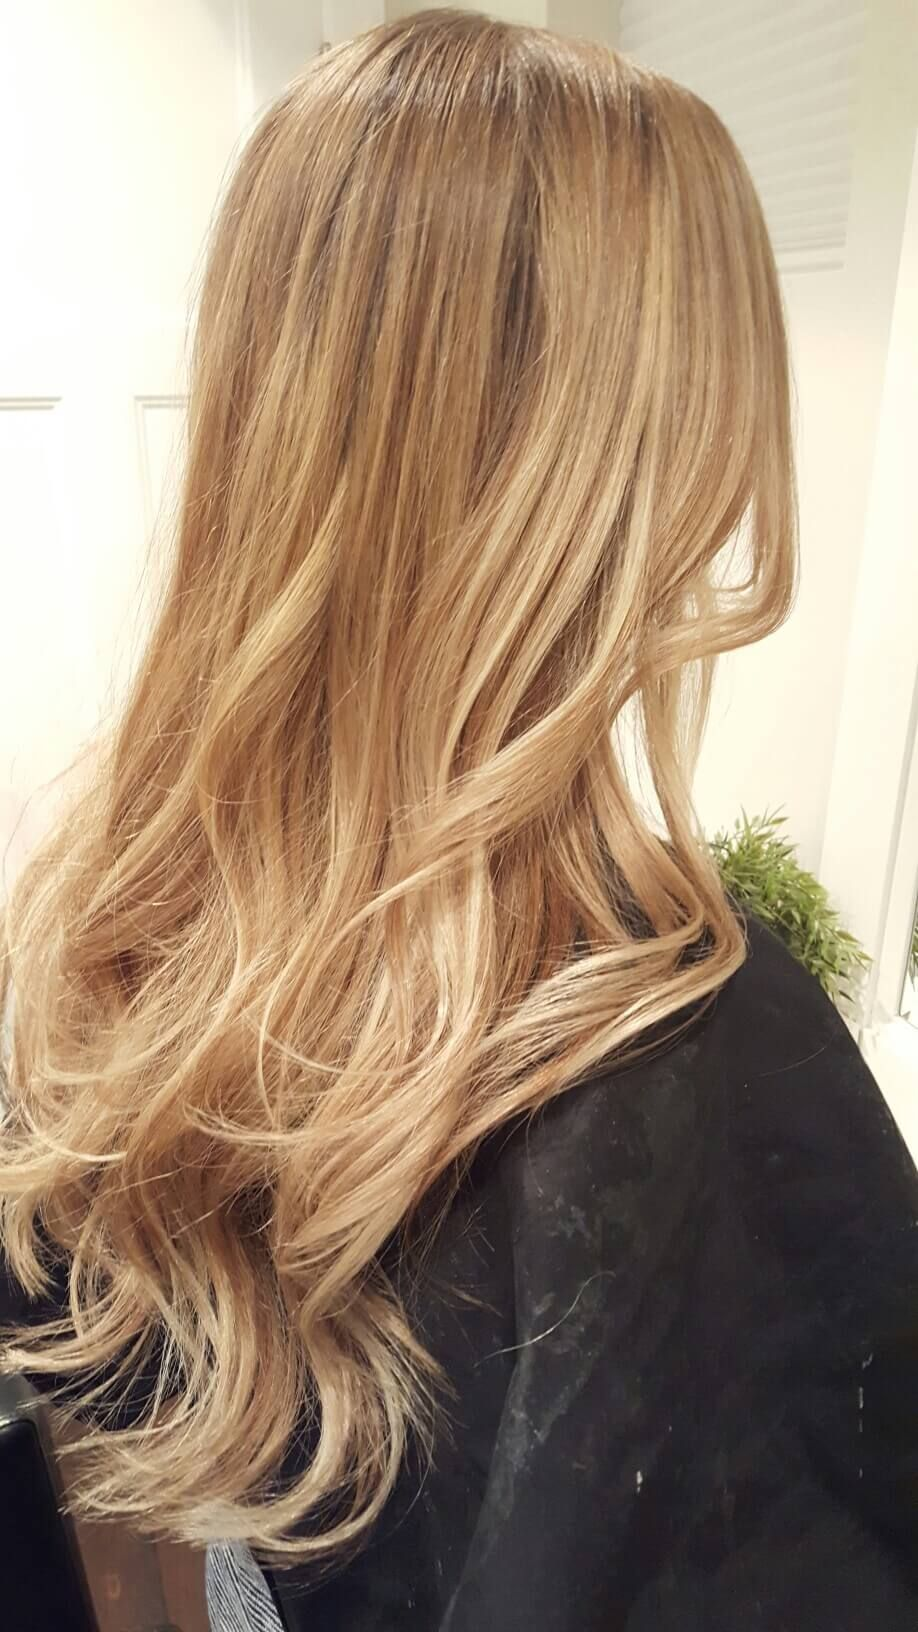 25 honey blonde hair color ideas that are just gorgeous - new women's hairstyles#blonde #color #gorgeous #hair #hairstyles #honey #ideas #womens